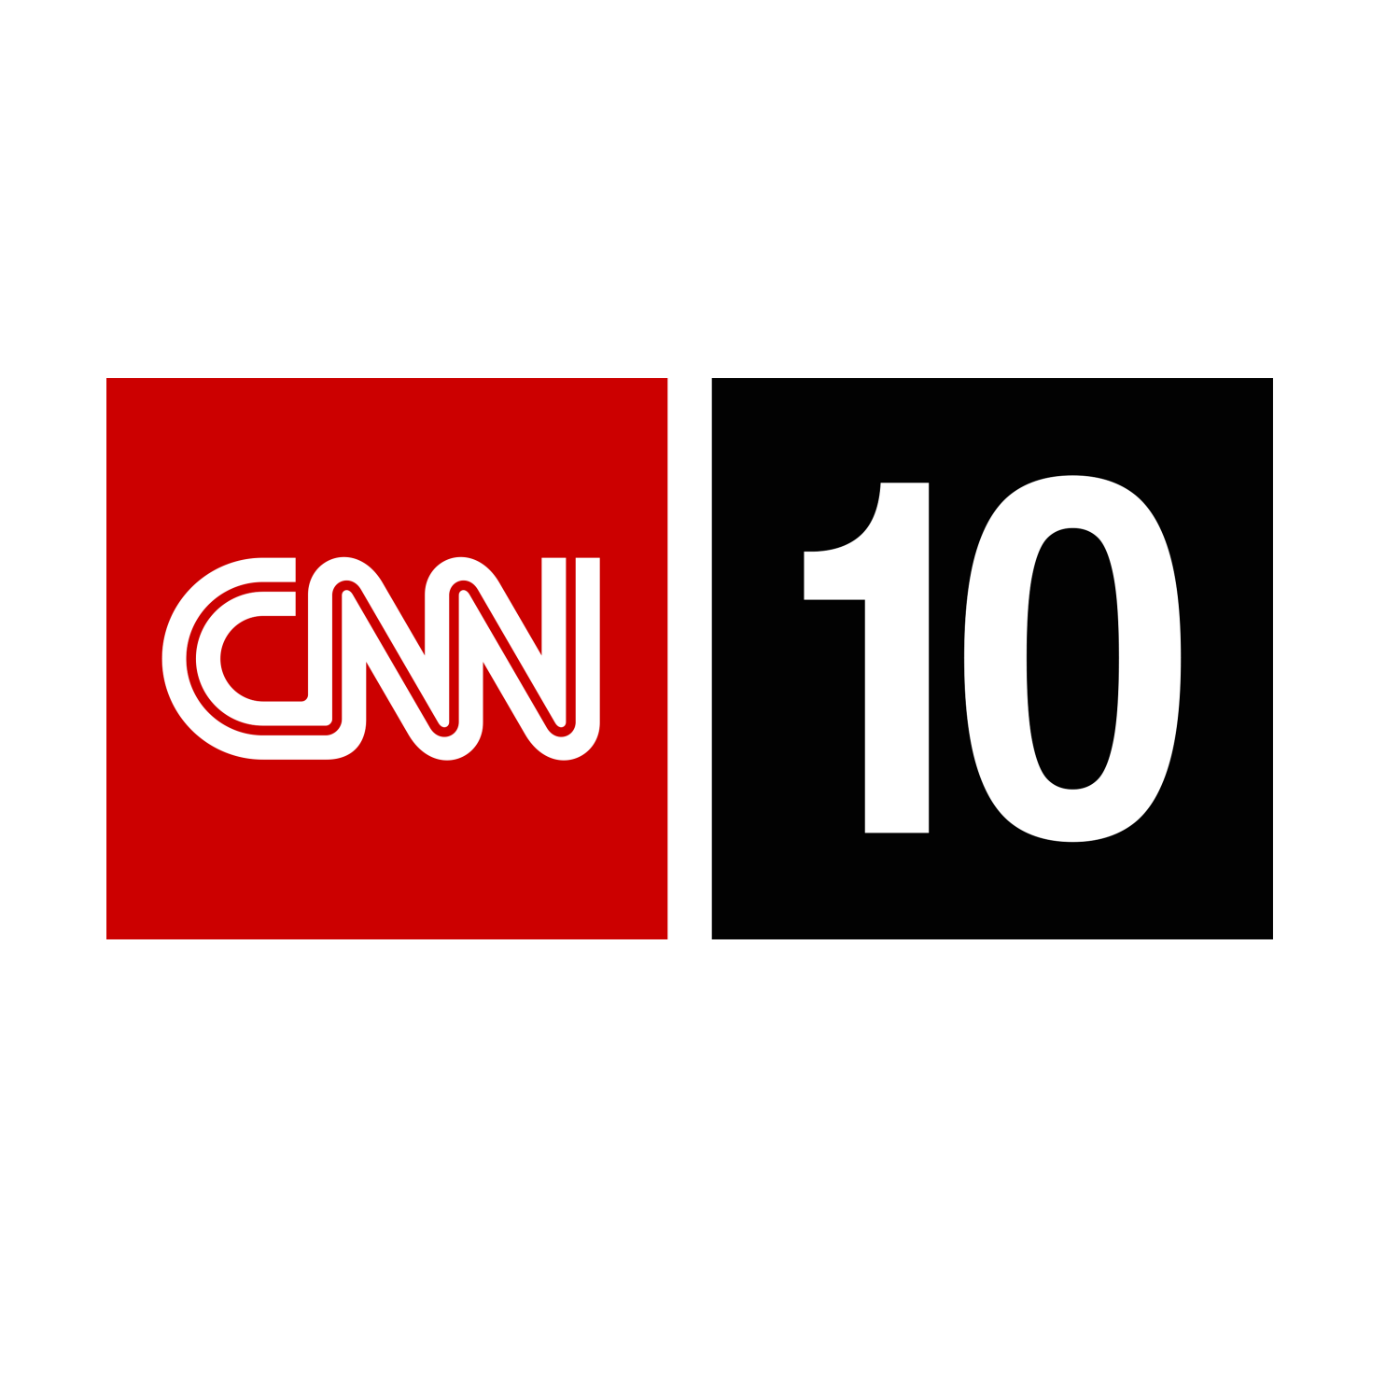 CNN Student News - October 2, 2012